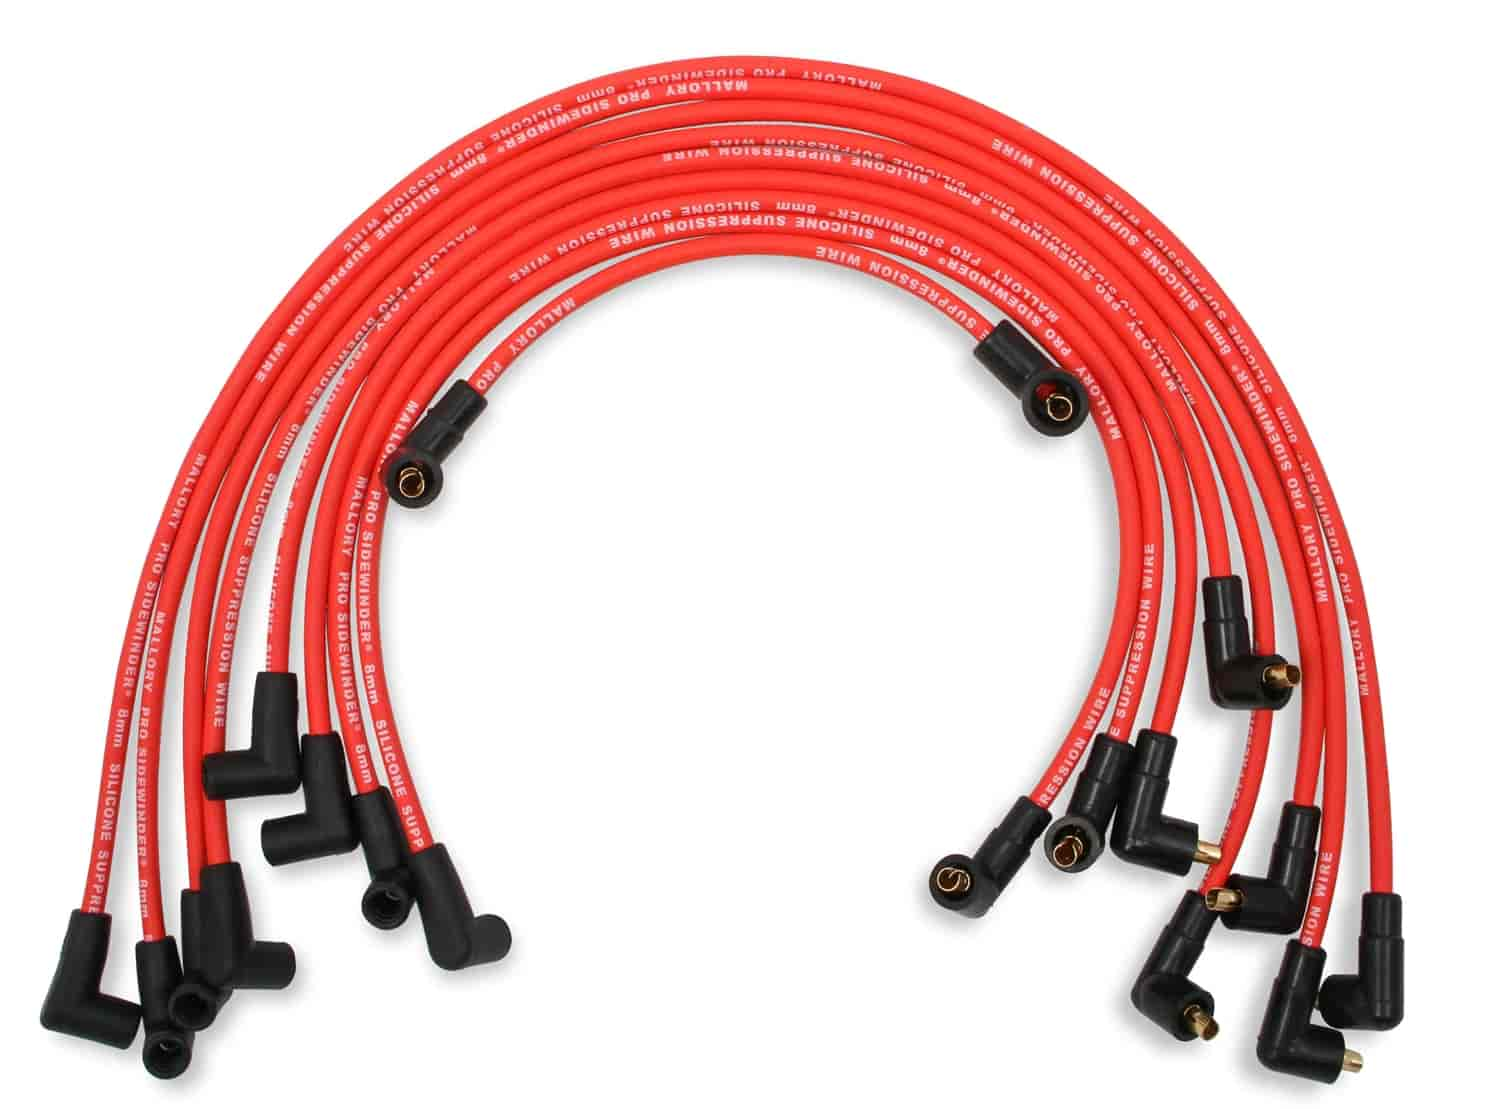 Mallory 604 8mm Red Pro Wire Spark Plug Set Small Block Chevy 88 Van Engine Wiring